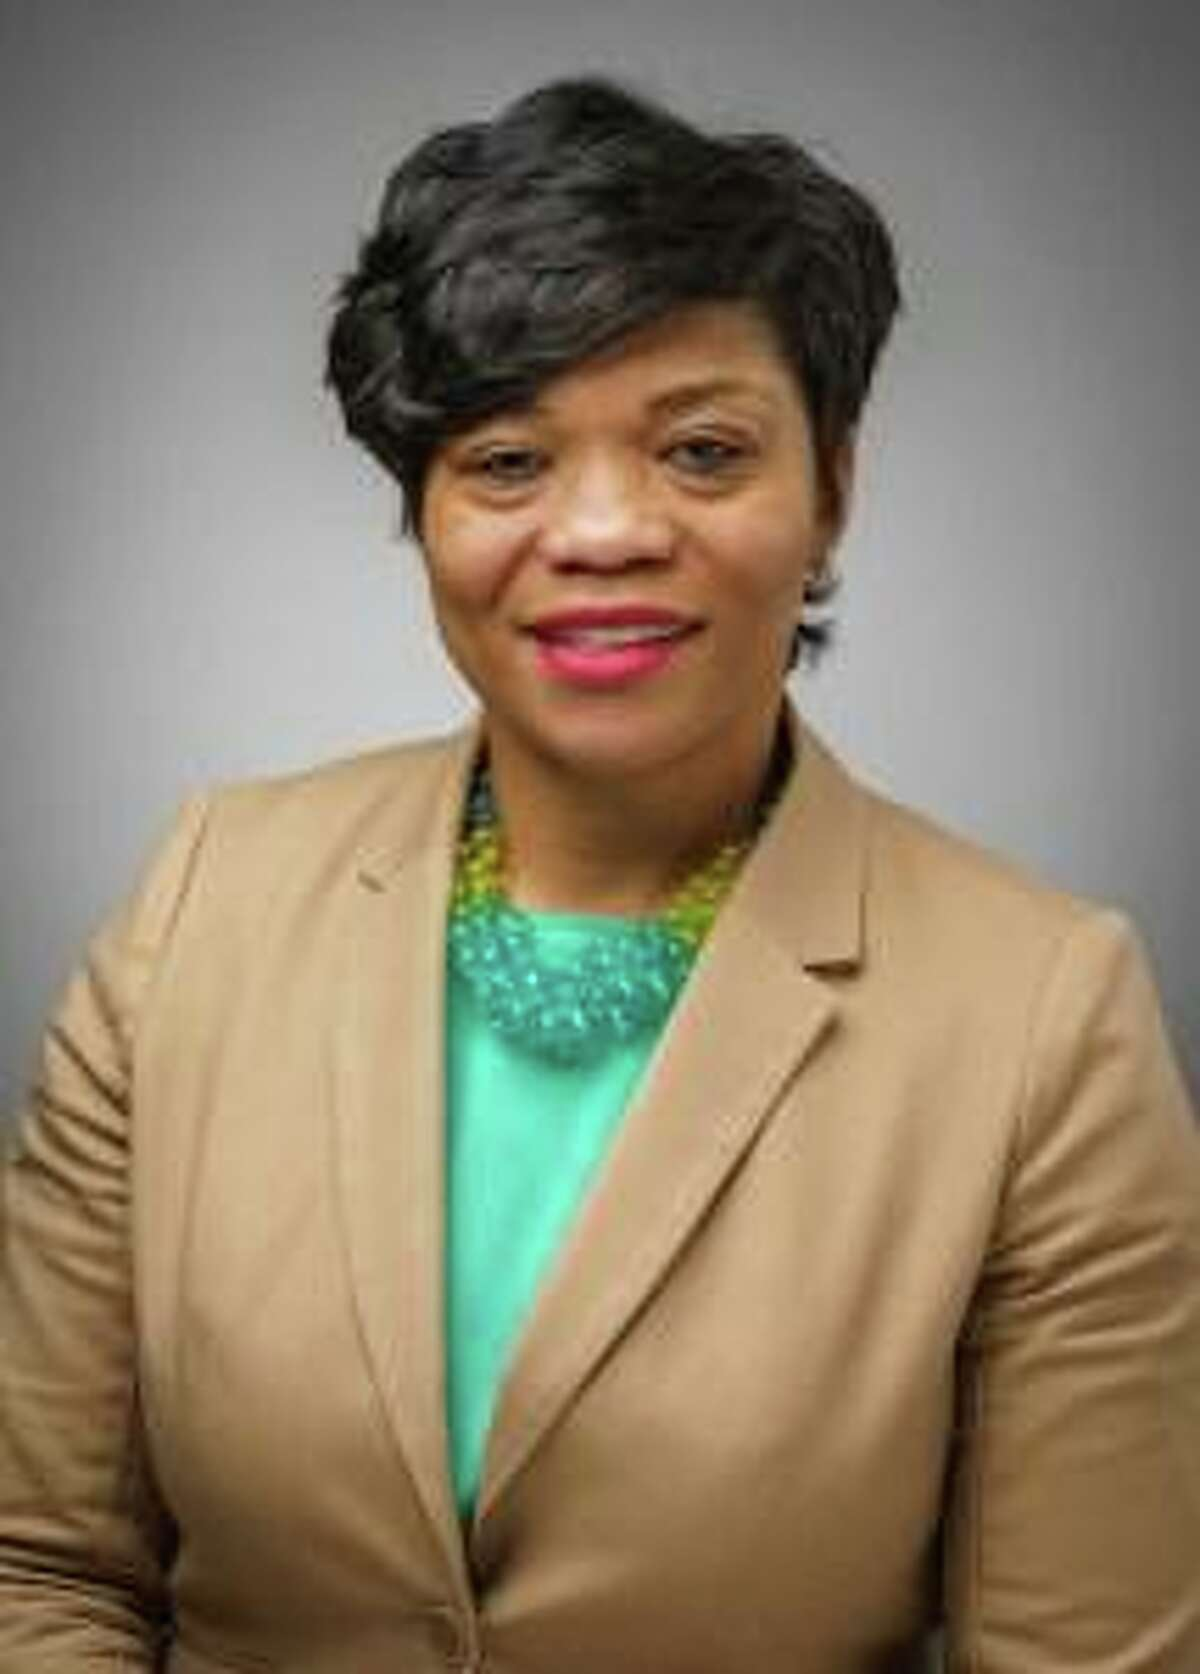 Ponderosa Twin Creeks Middle School principal Kenisha Williams was named 2021 Secondary Principal of the Year, Spring ISD announced in a news release March 11.